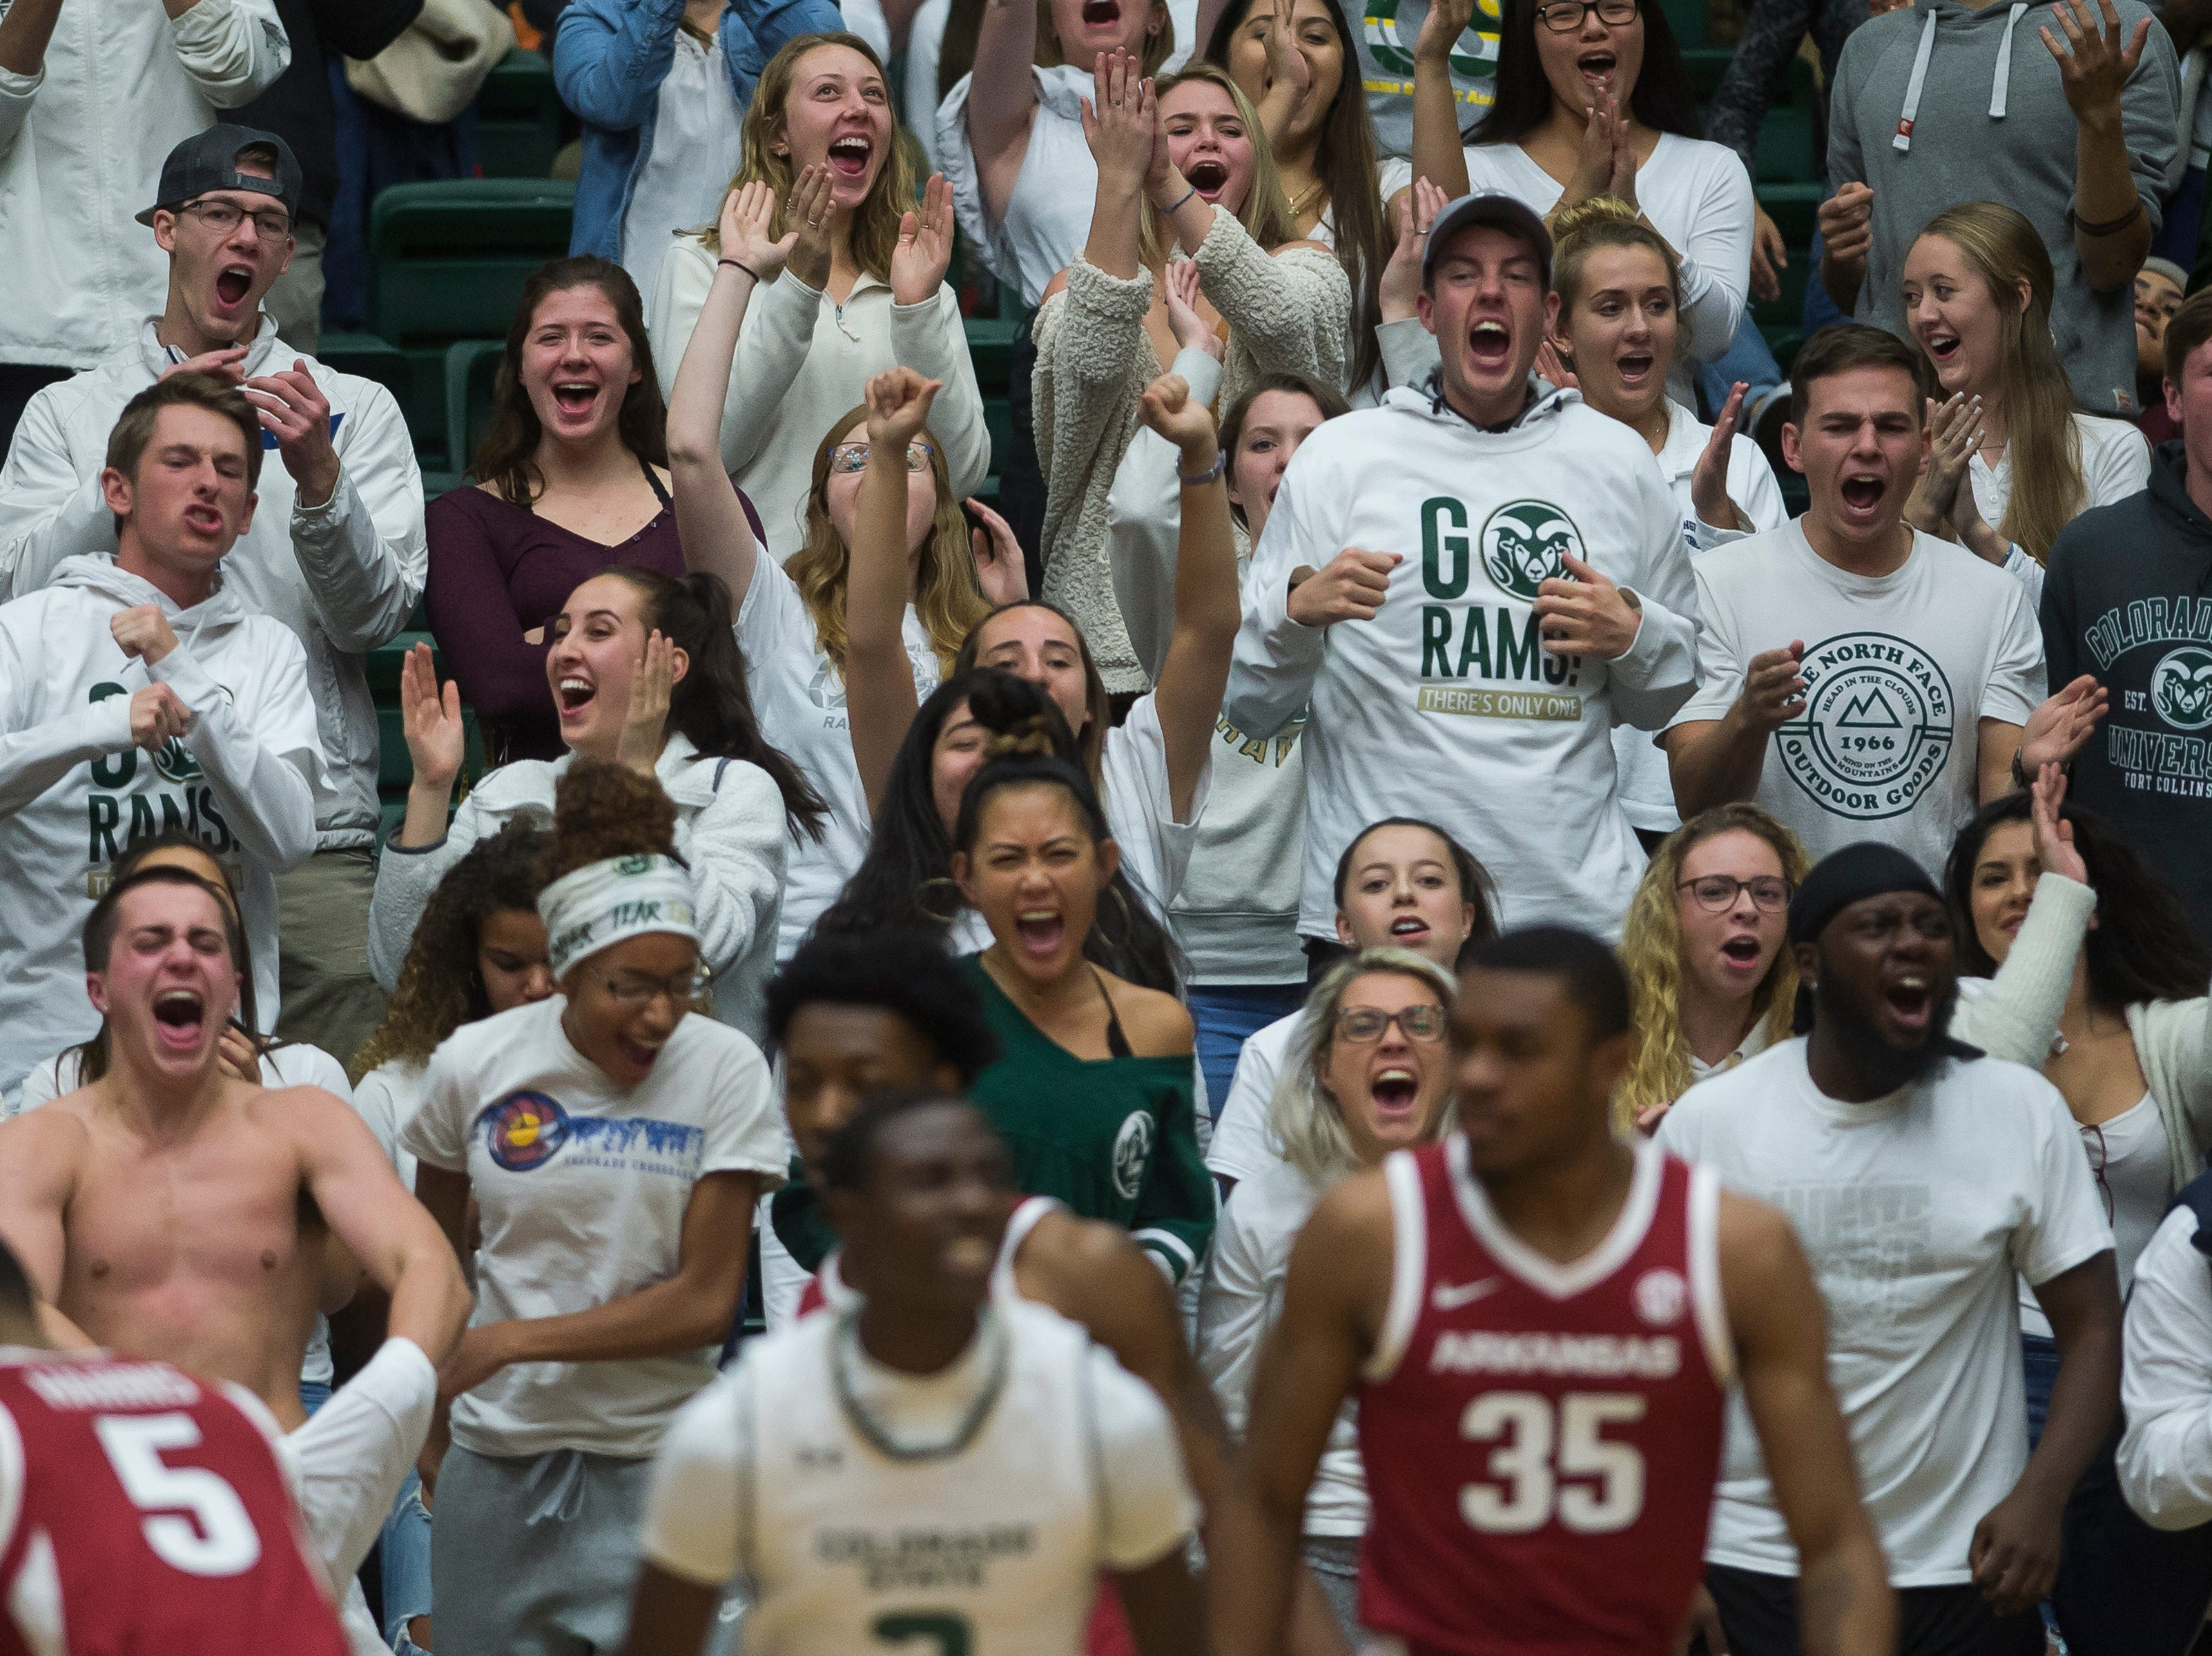 The Colorado State University student section reacts to a play during a game against Arkansas on Wednesday, Dec. 5, 2018, Moby Arena in Fort Collins, Colo.